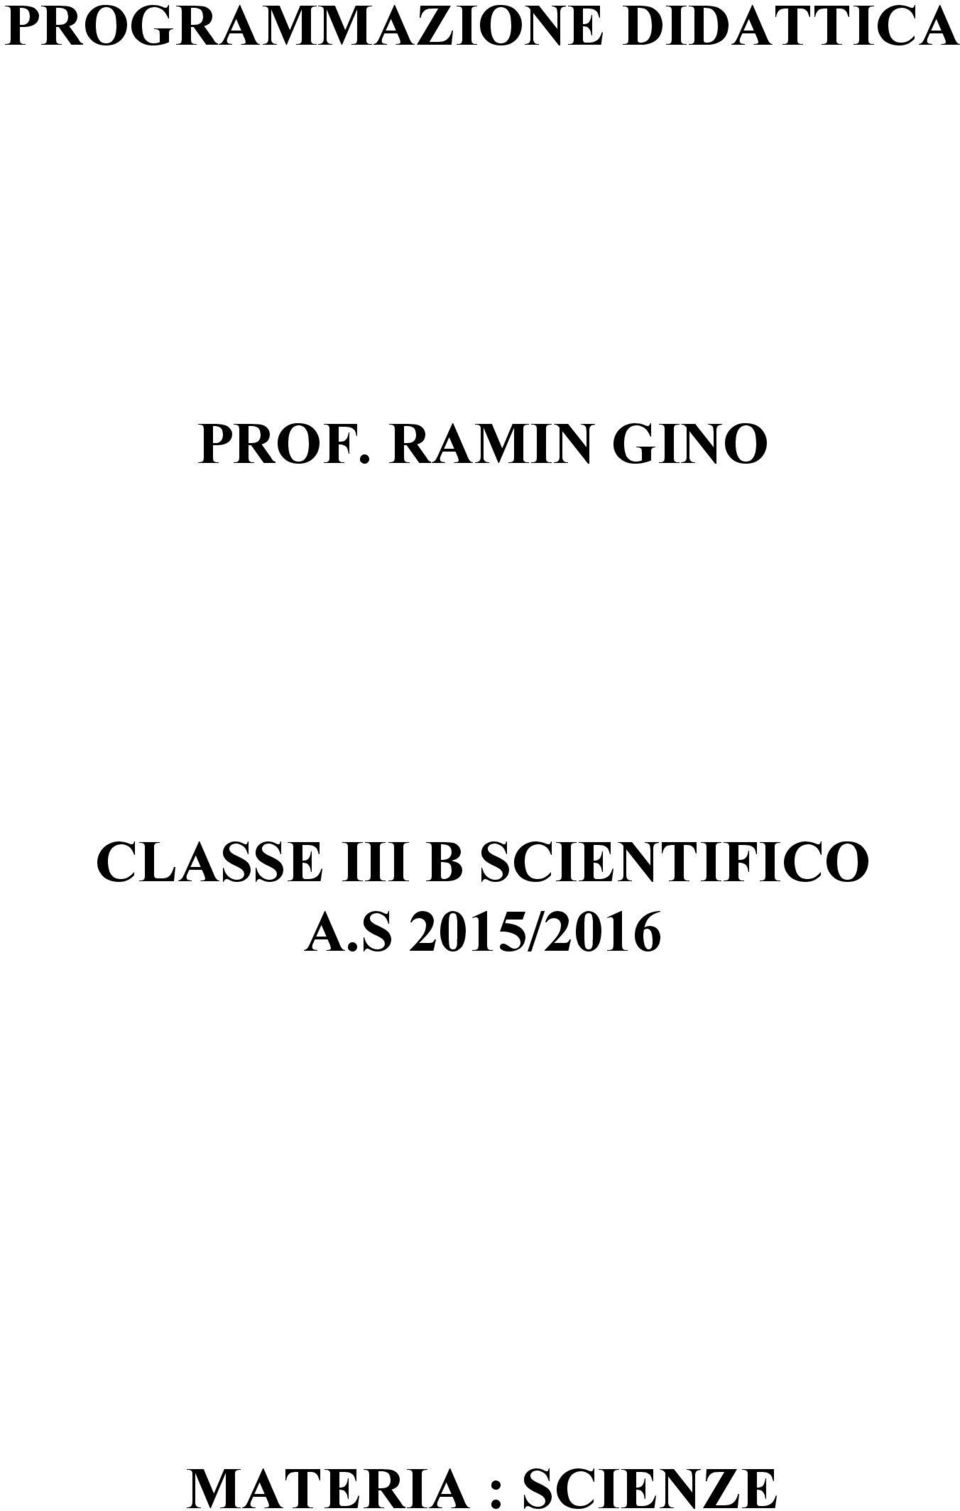 III B SCIENTIFICO A.